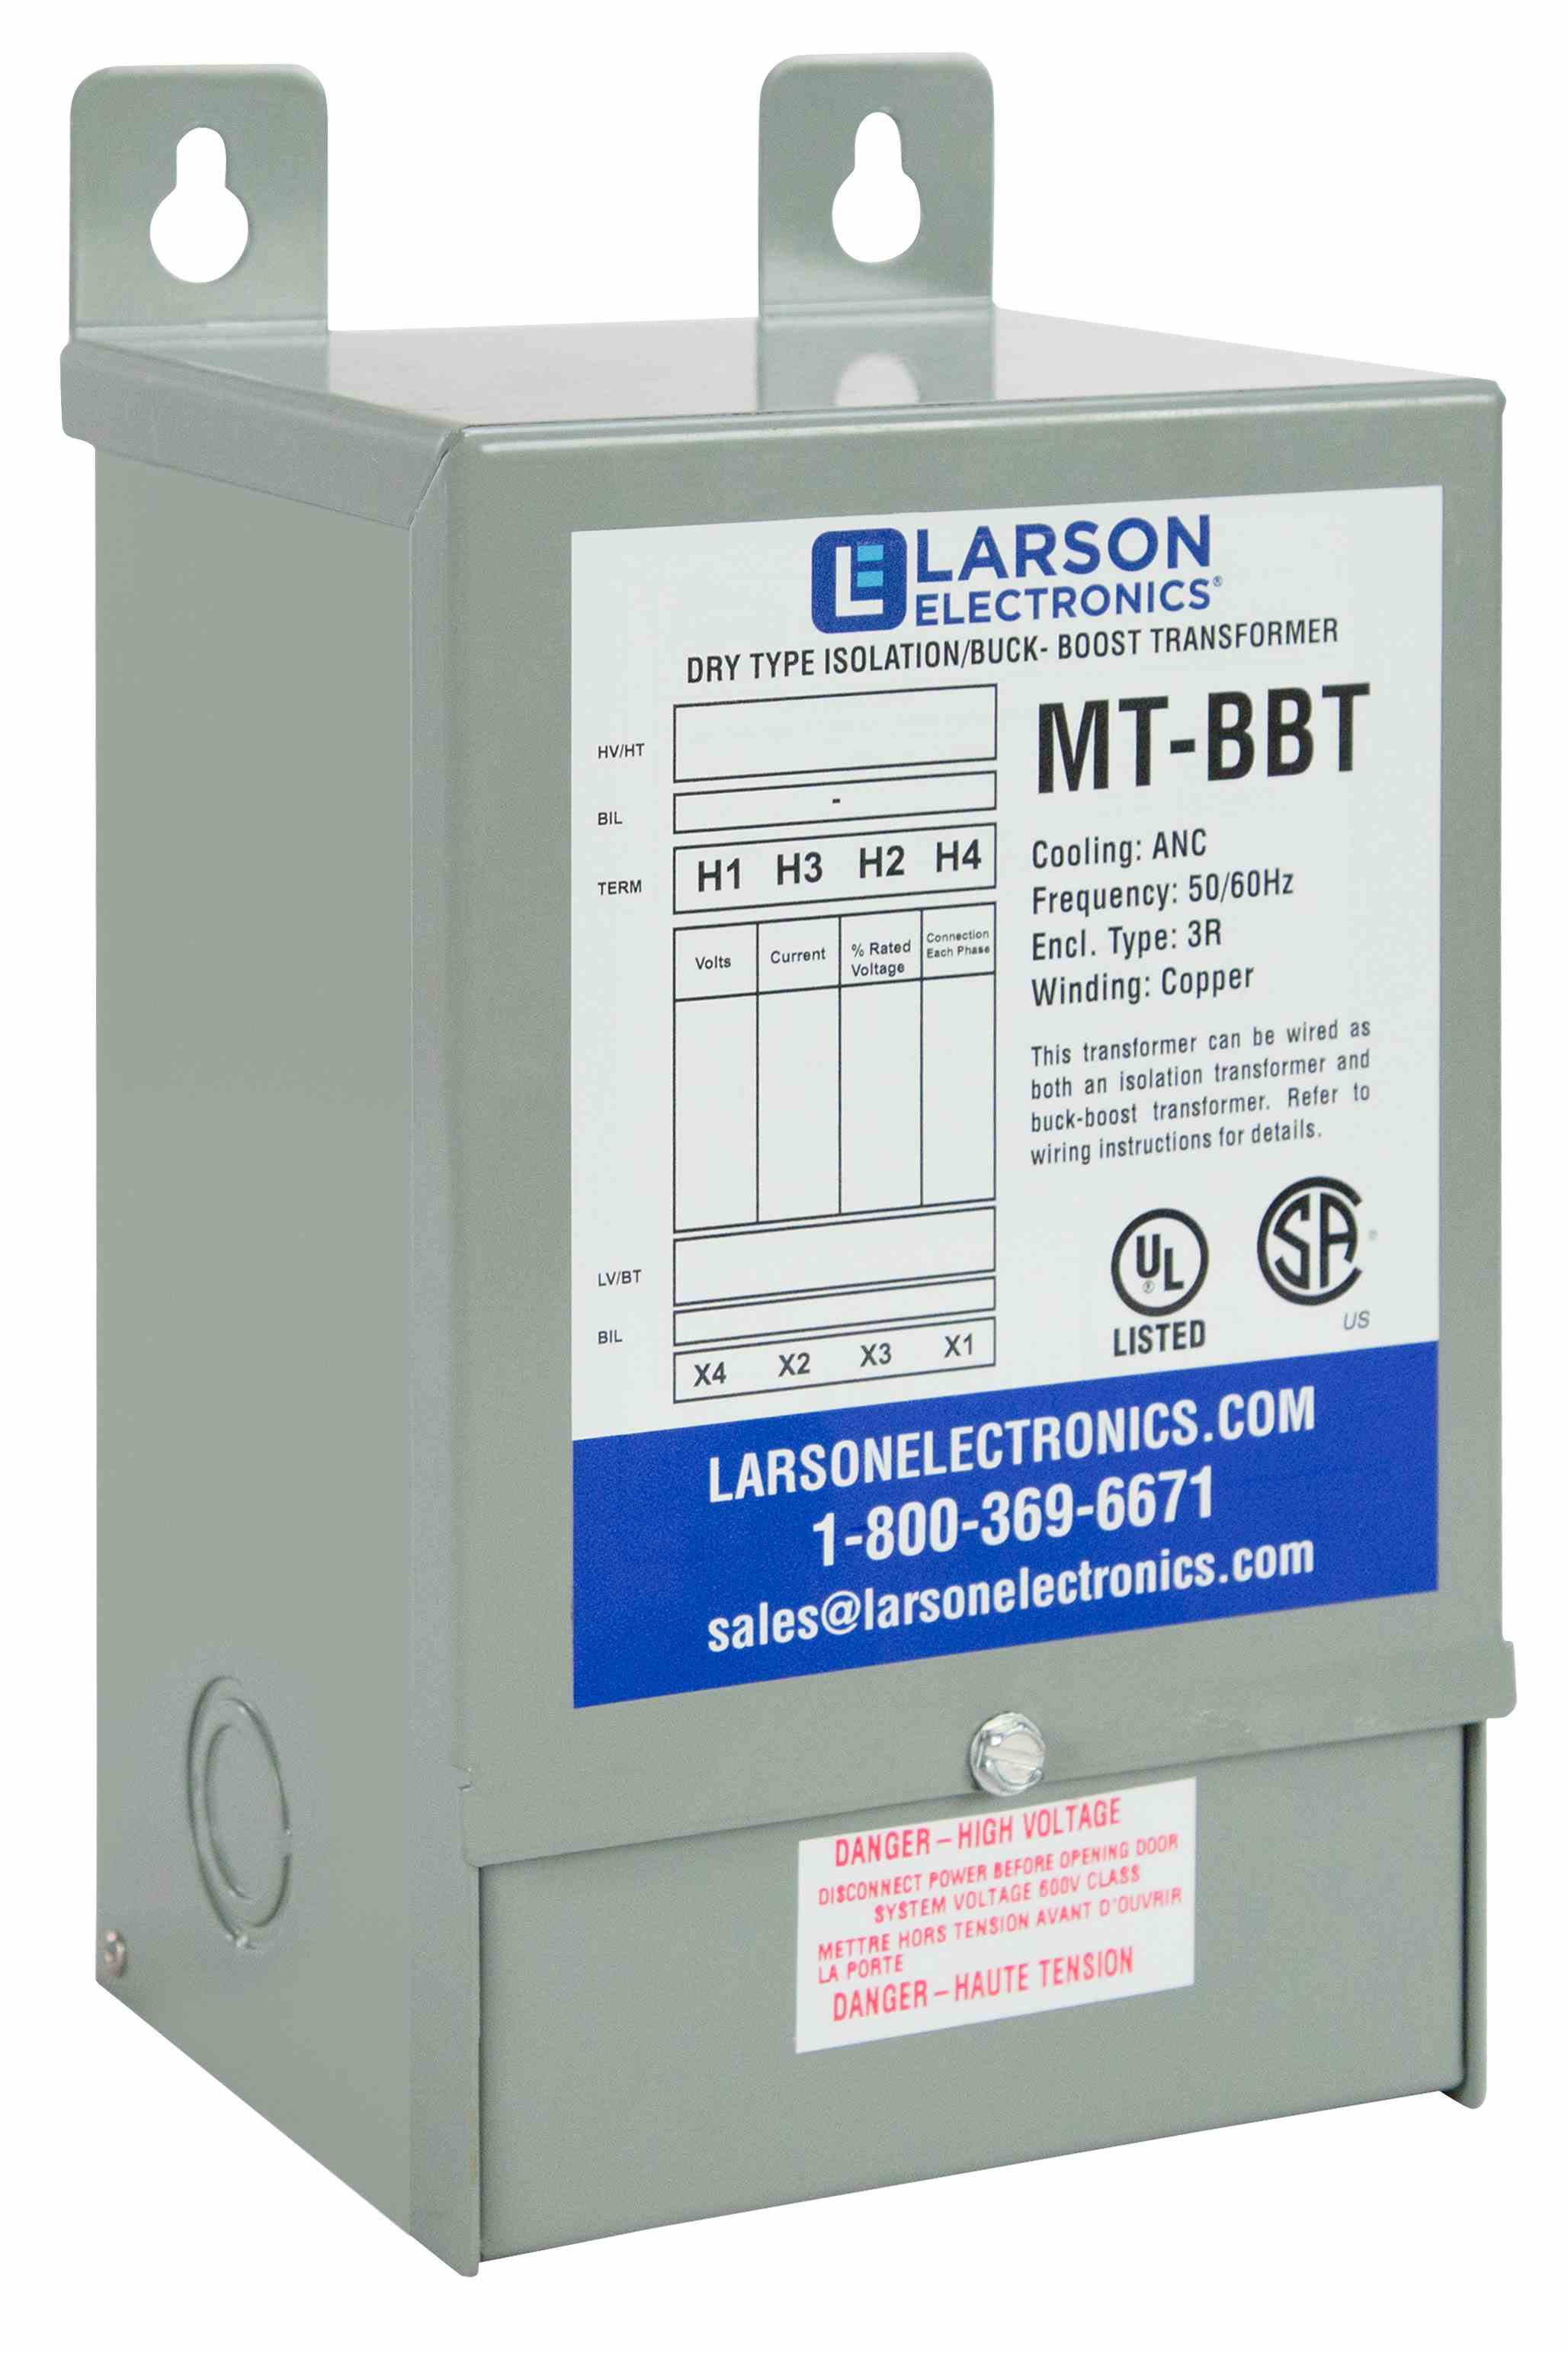 Larson Electronics Llc Releases Single Phase Buck Boost Step Up Transformer Explosion Proof